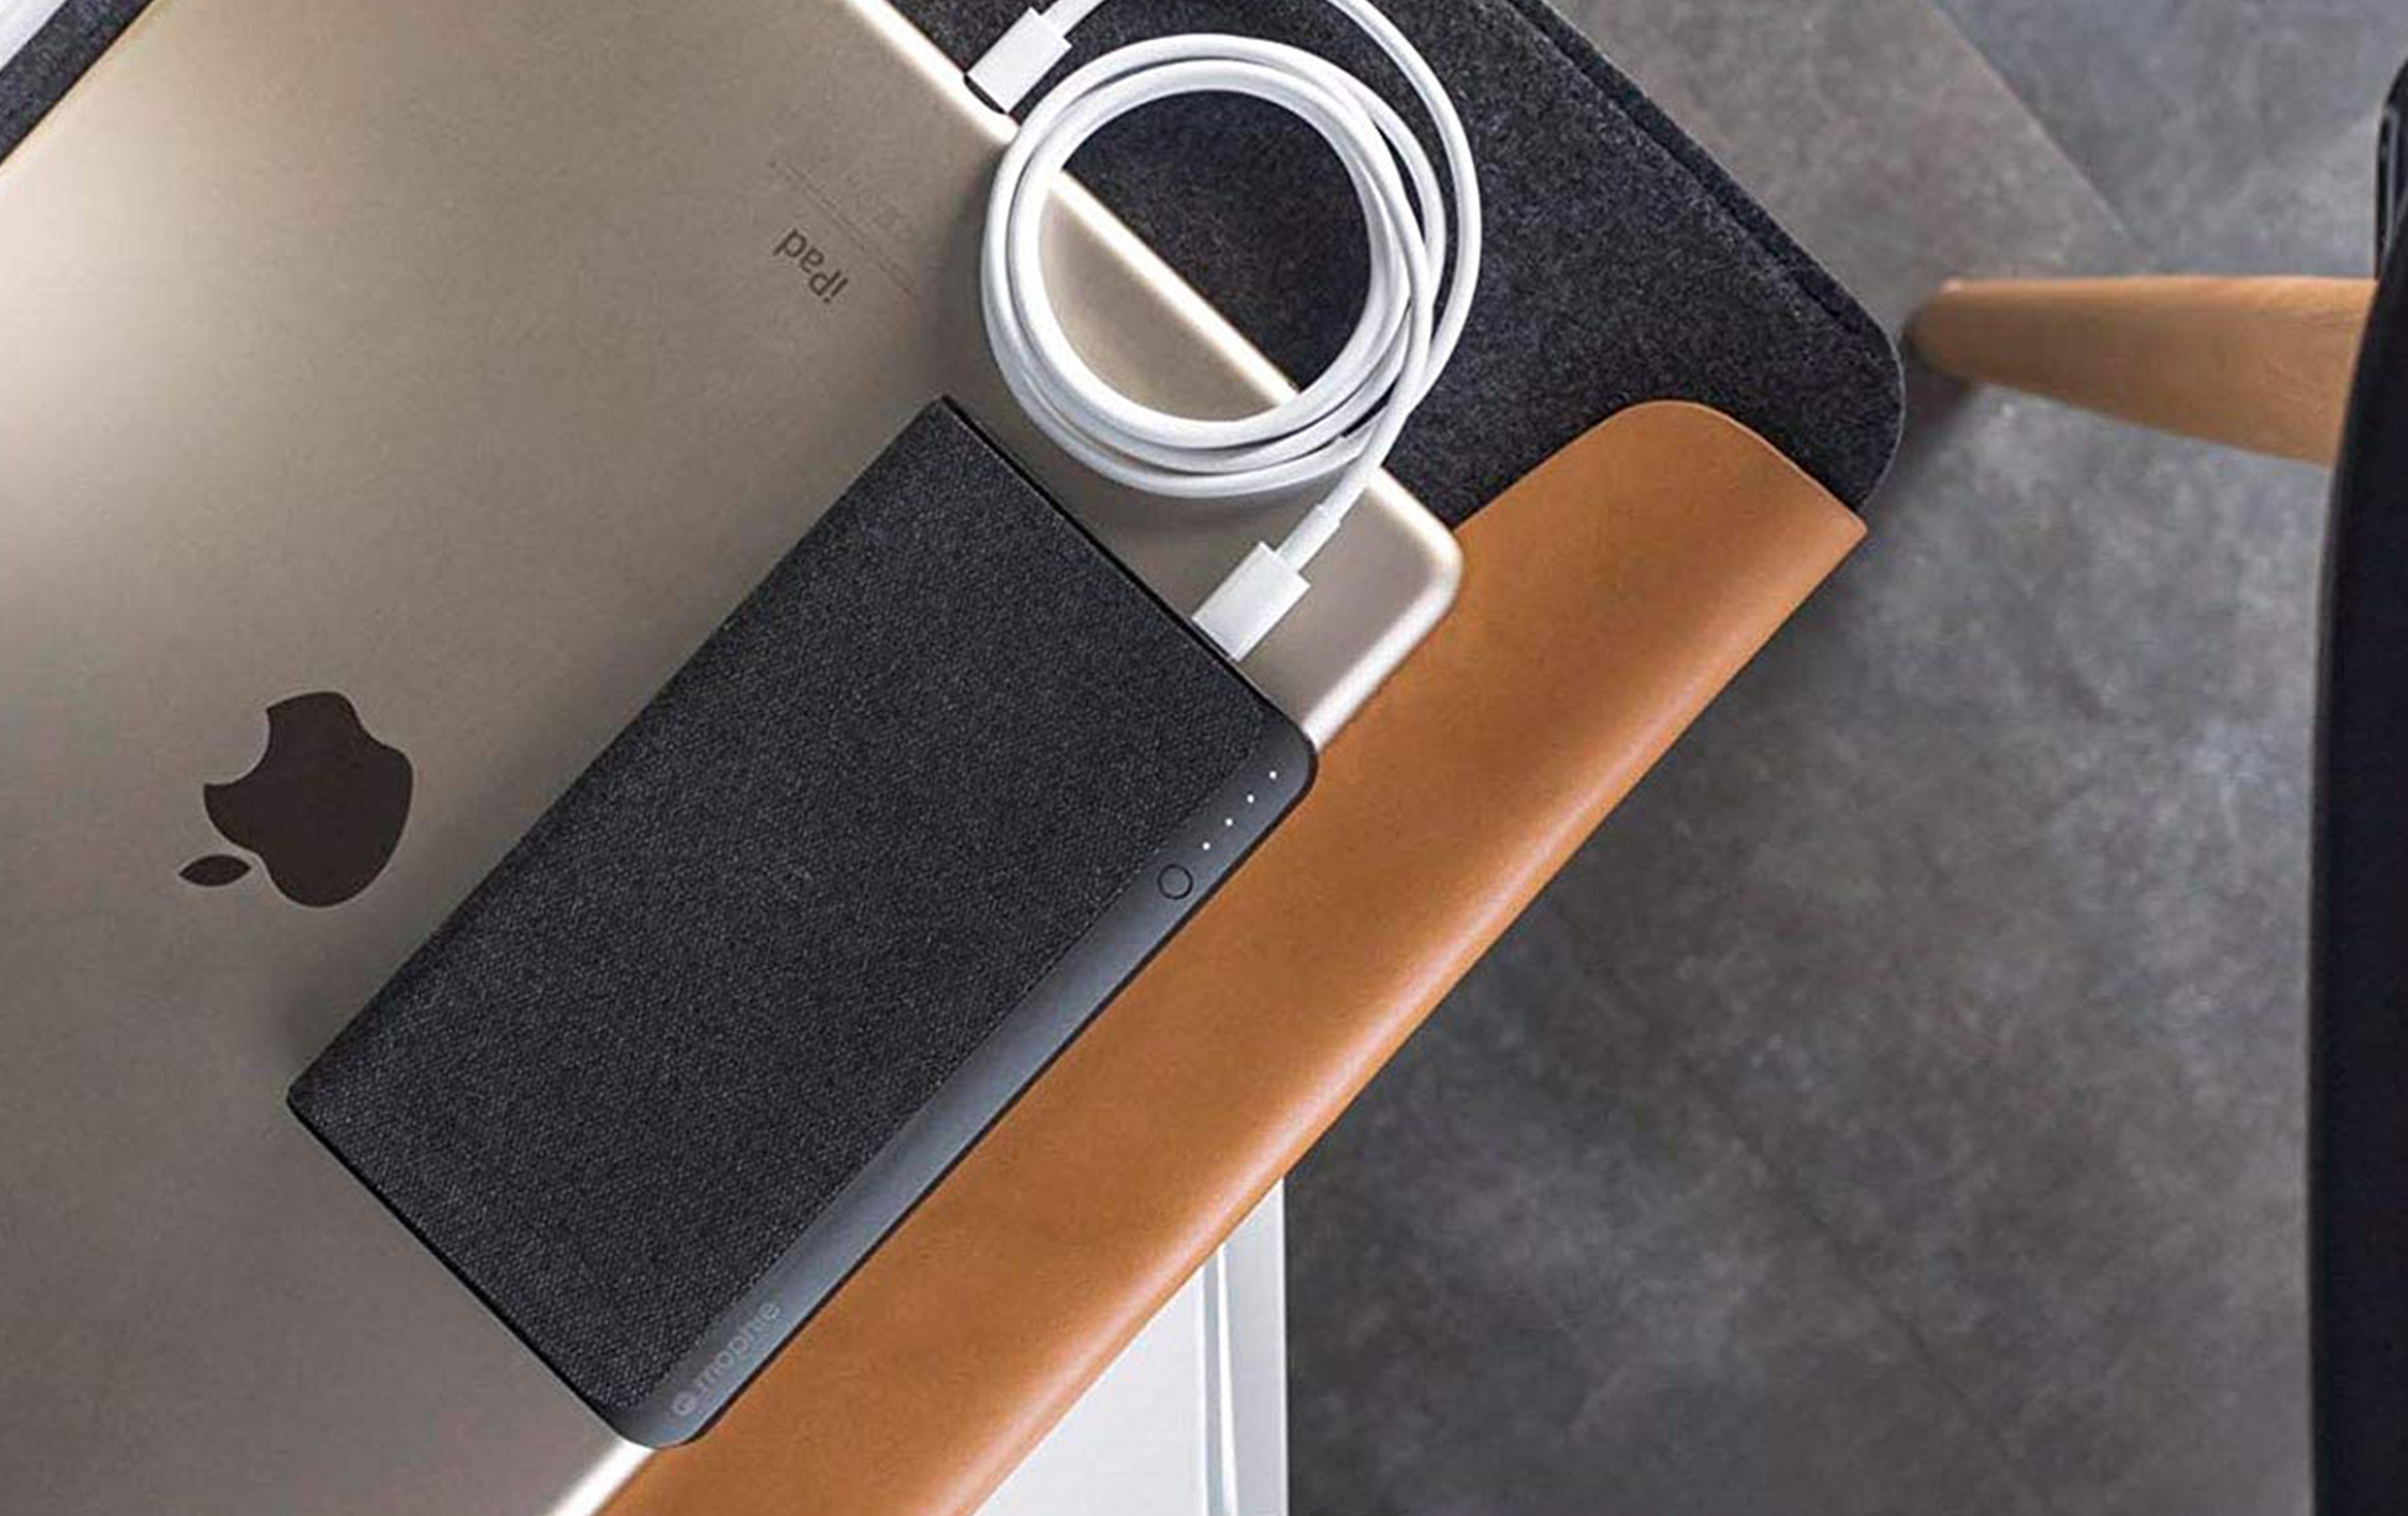 Morphie Powerstation USB-C